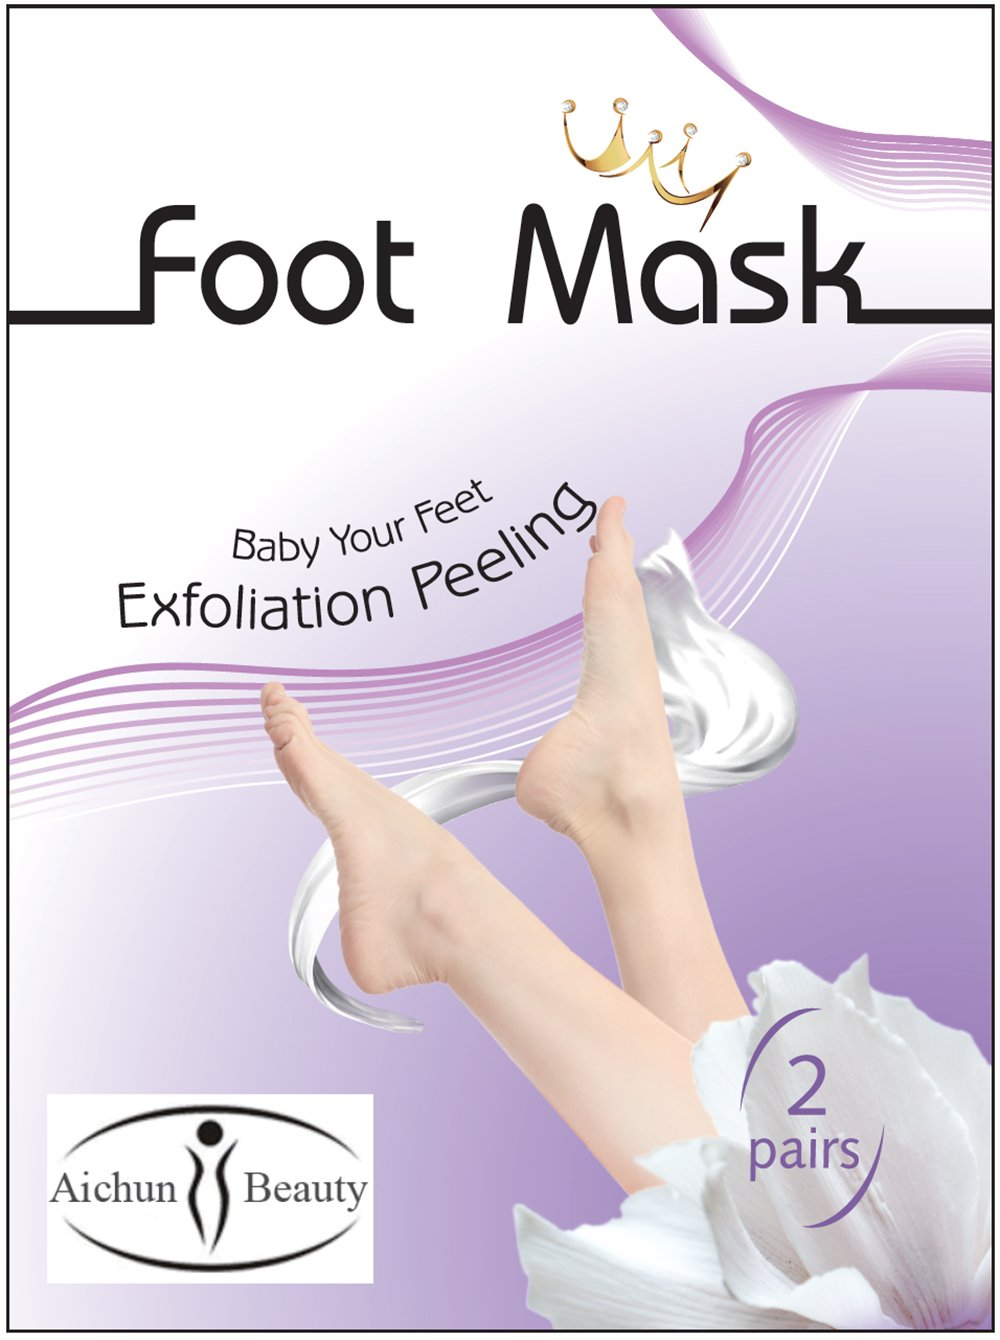 AICHUN BEAUTY Foot Peel Mask 2 Pack, Peeling Away Calluses and Dead Skin cells, Make Your Feet Baby Soft, Exfoliating Foot Mask, Repair Rough Heels, Get Silky Soft Feet (2 PAIR in 1 PACK)